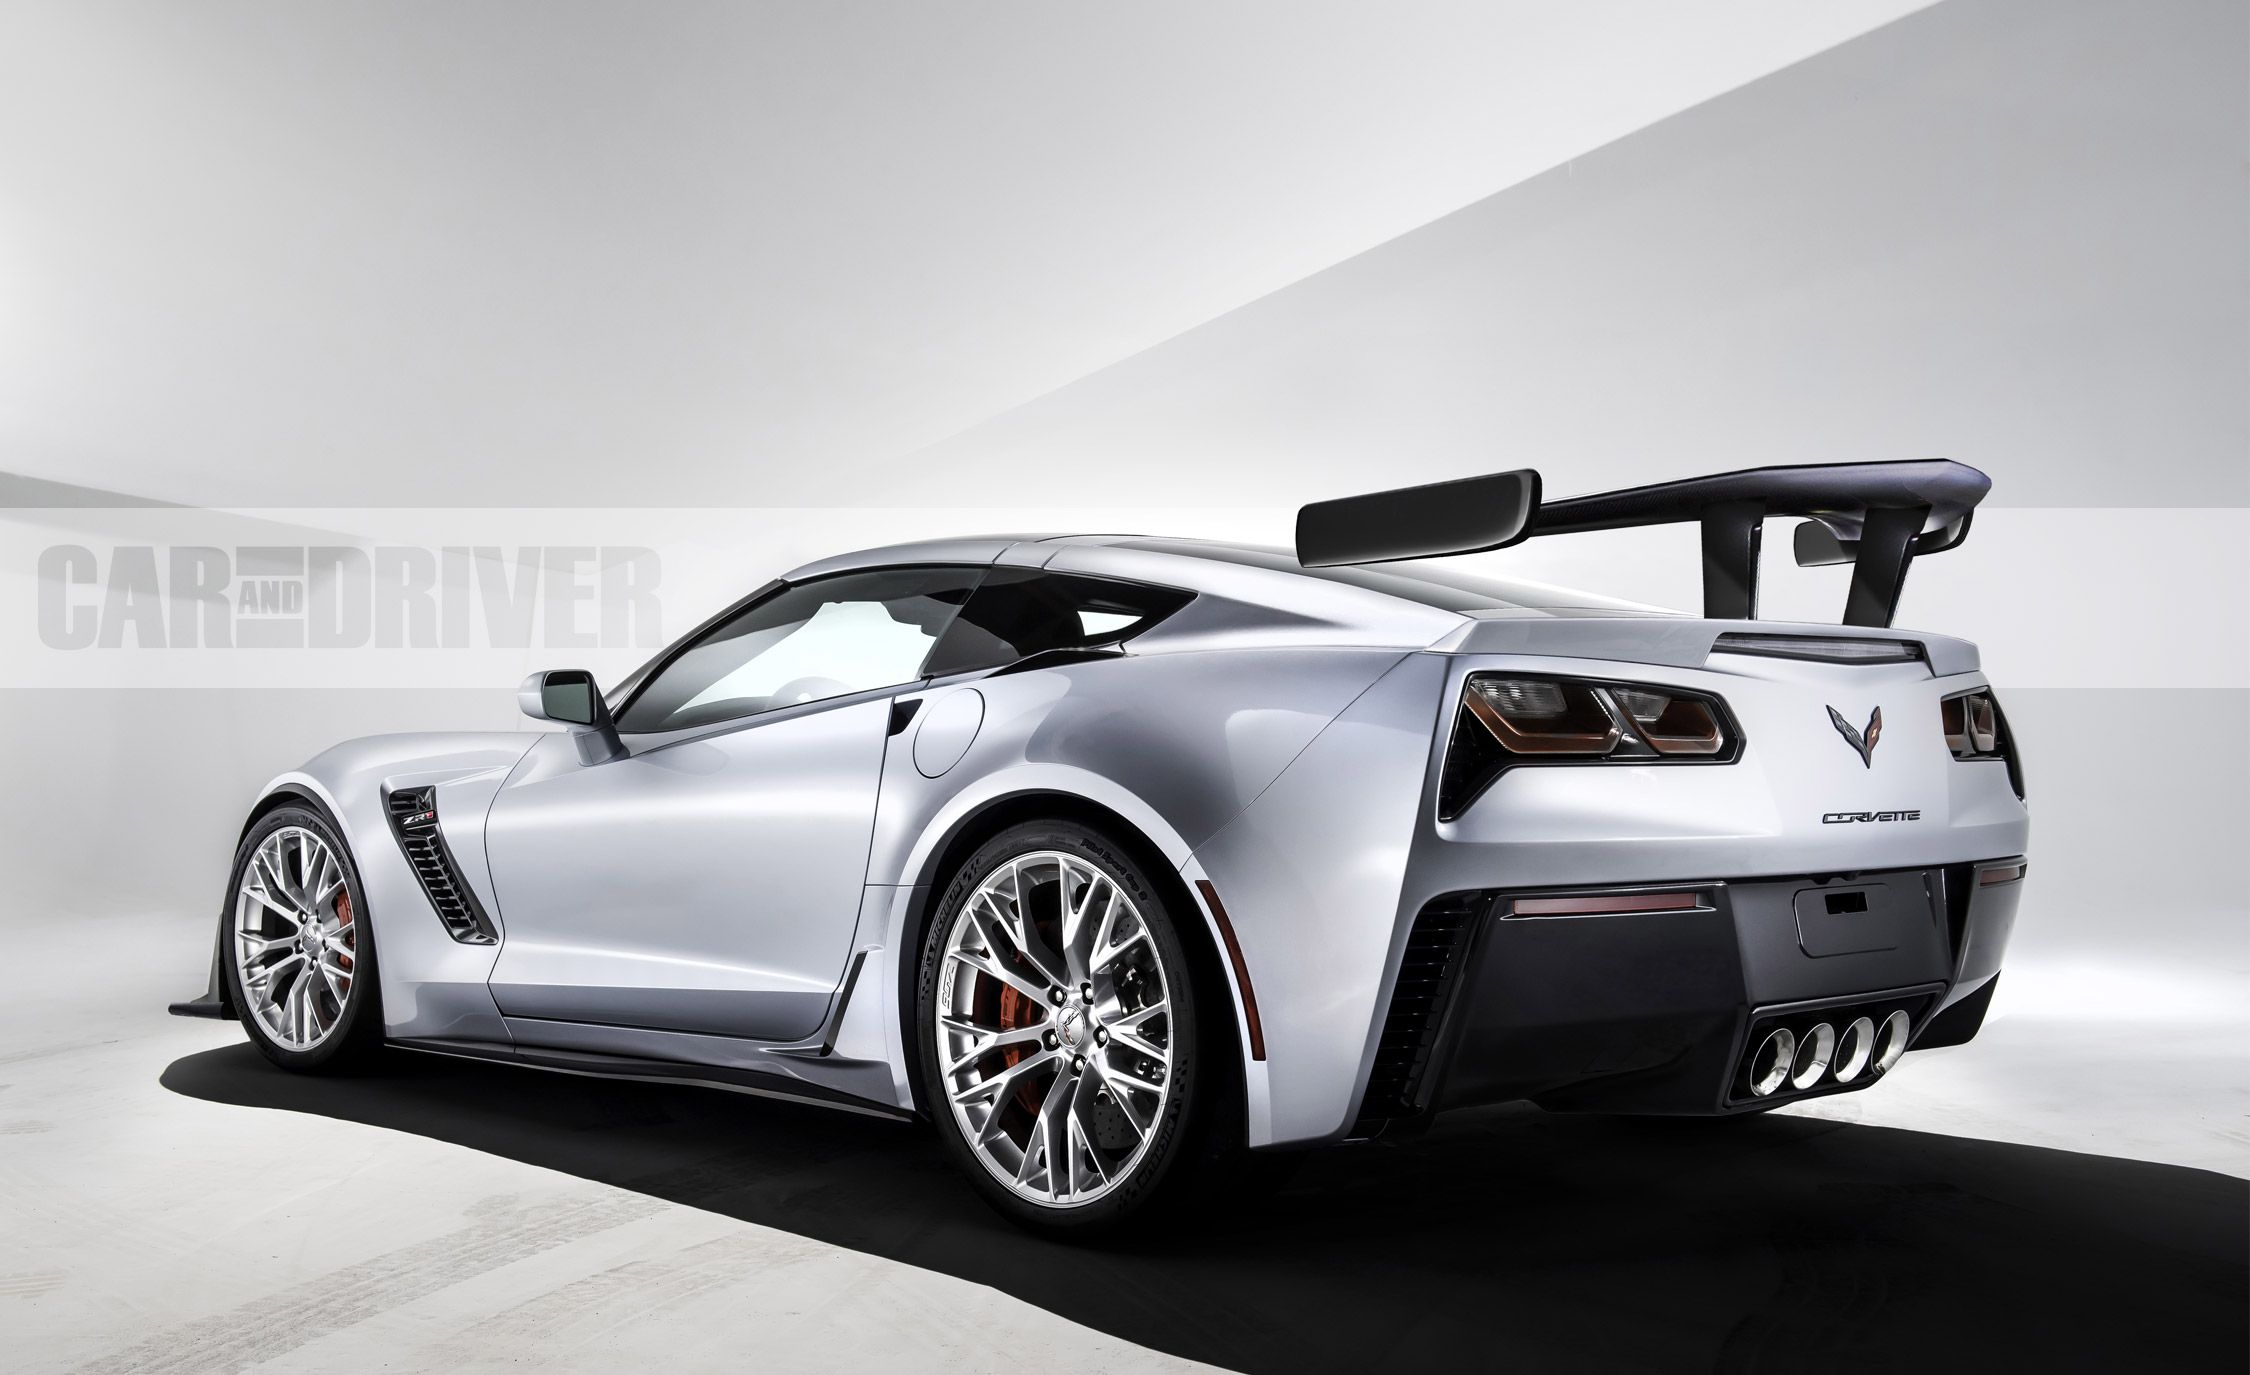 The 2018 Chevrolet Corvette Zr1 Is A Car Worth Waiting For